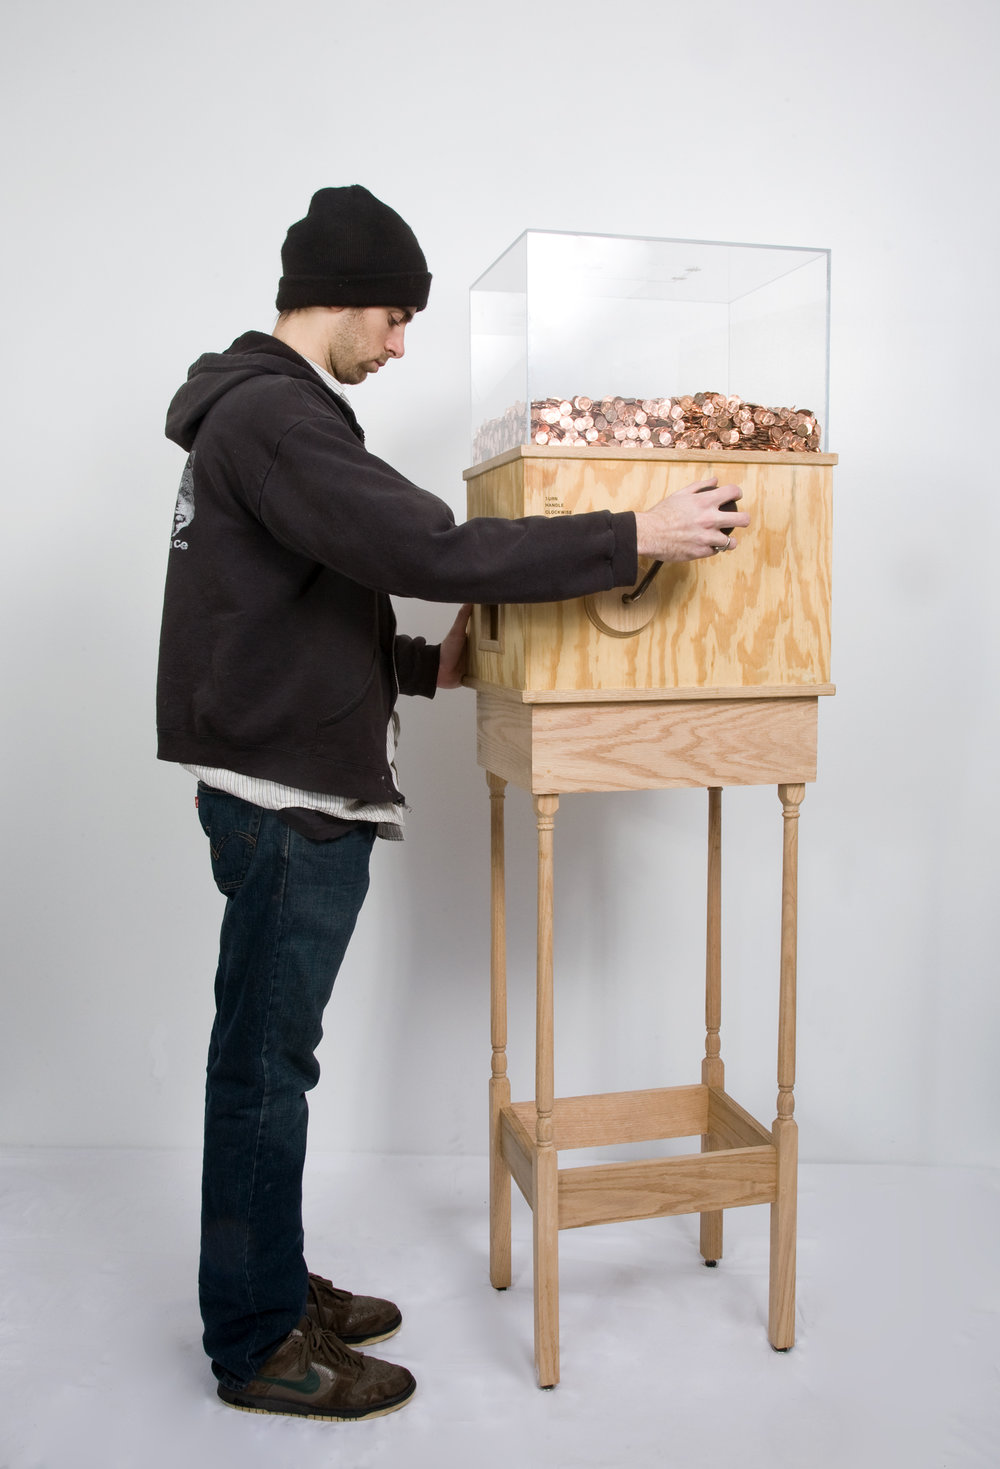 Blake Fall-Conroy (Baltimore > Ithaca),  Minimum Wage Machine , 2008-10, Custom electronics, change sorter, wood, plexiglas, motor, miscellaneous hardware, pennies; approximately 15 x 19 x 72 inches